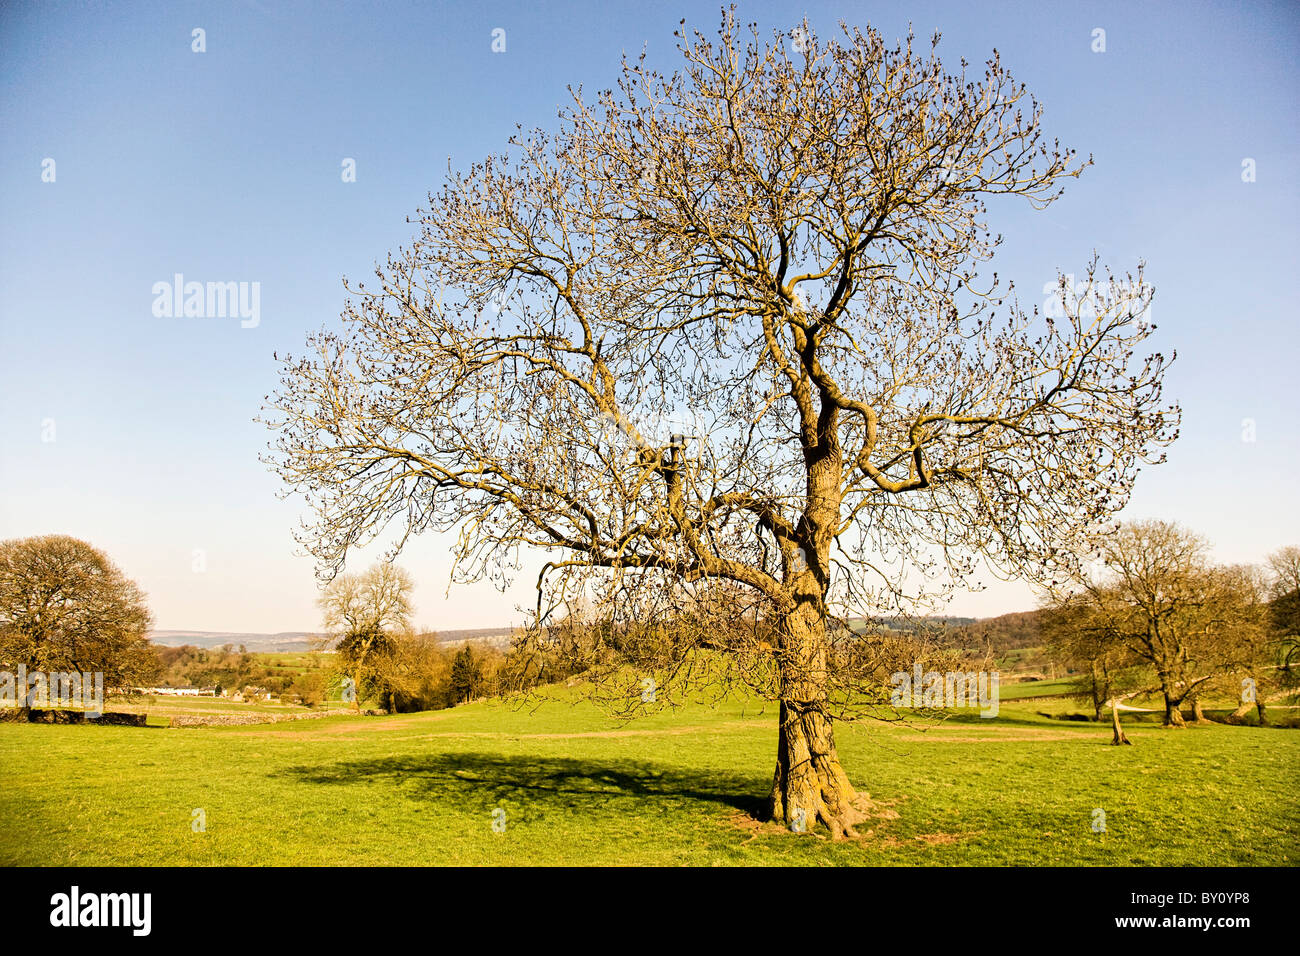 Ash tree Fraxinus excelsior in early spring growing in typical upland limestone habitat in the Derbyshire Peak District - Stock Image